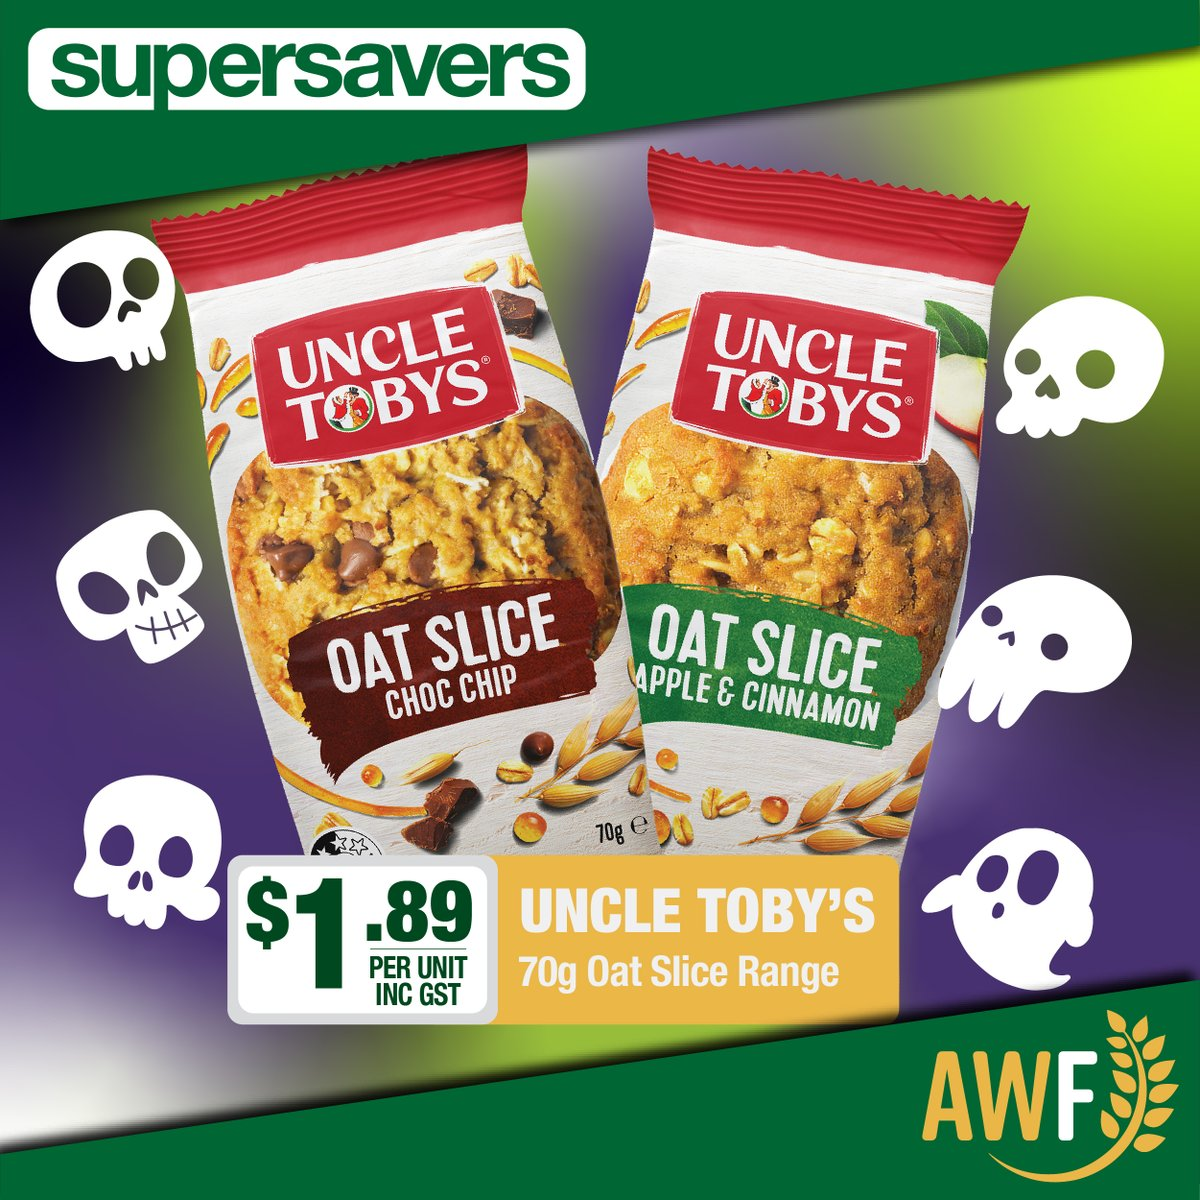 Uncle Toby's Choc Chip & Apple & Cinnamon 70g Oat Slice on special in this months Spooky Savers!  View it online: https://t.co/4JQiBKD4hX ------------ 📞 Call us: (08) 9041 1424 📧 Email: sales@allwaysfoods.com.au #AWF #AllwaysFoods #merredin #supersavers #uncletobys #oatslice https://t.co/omcXnxHrmx